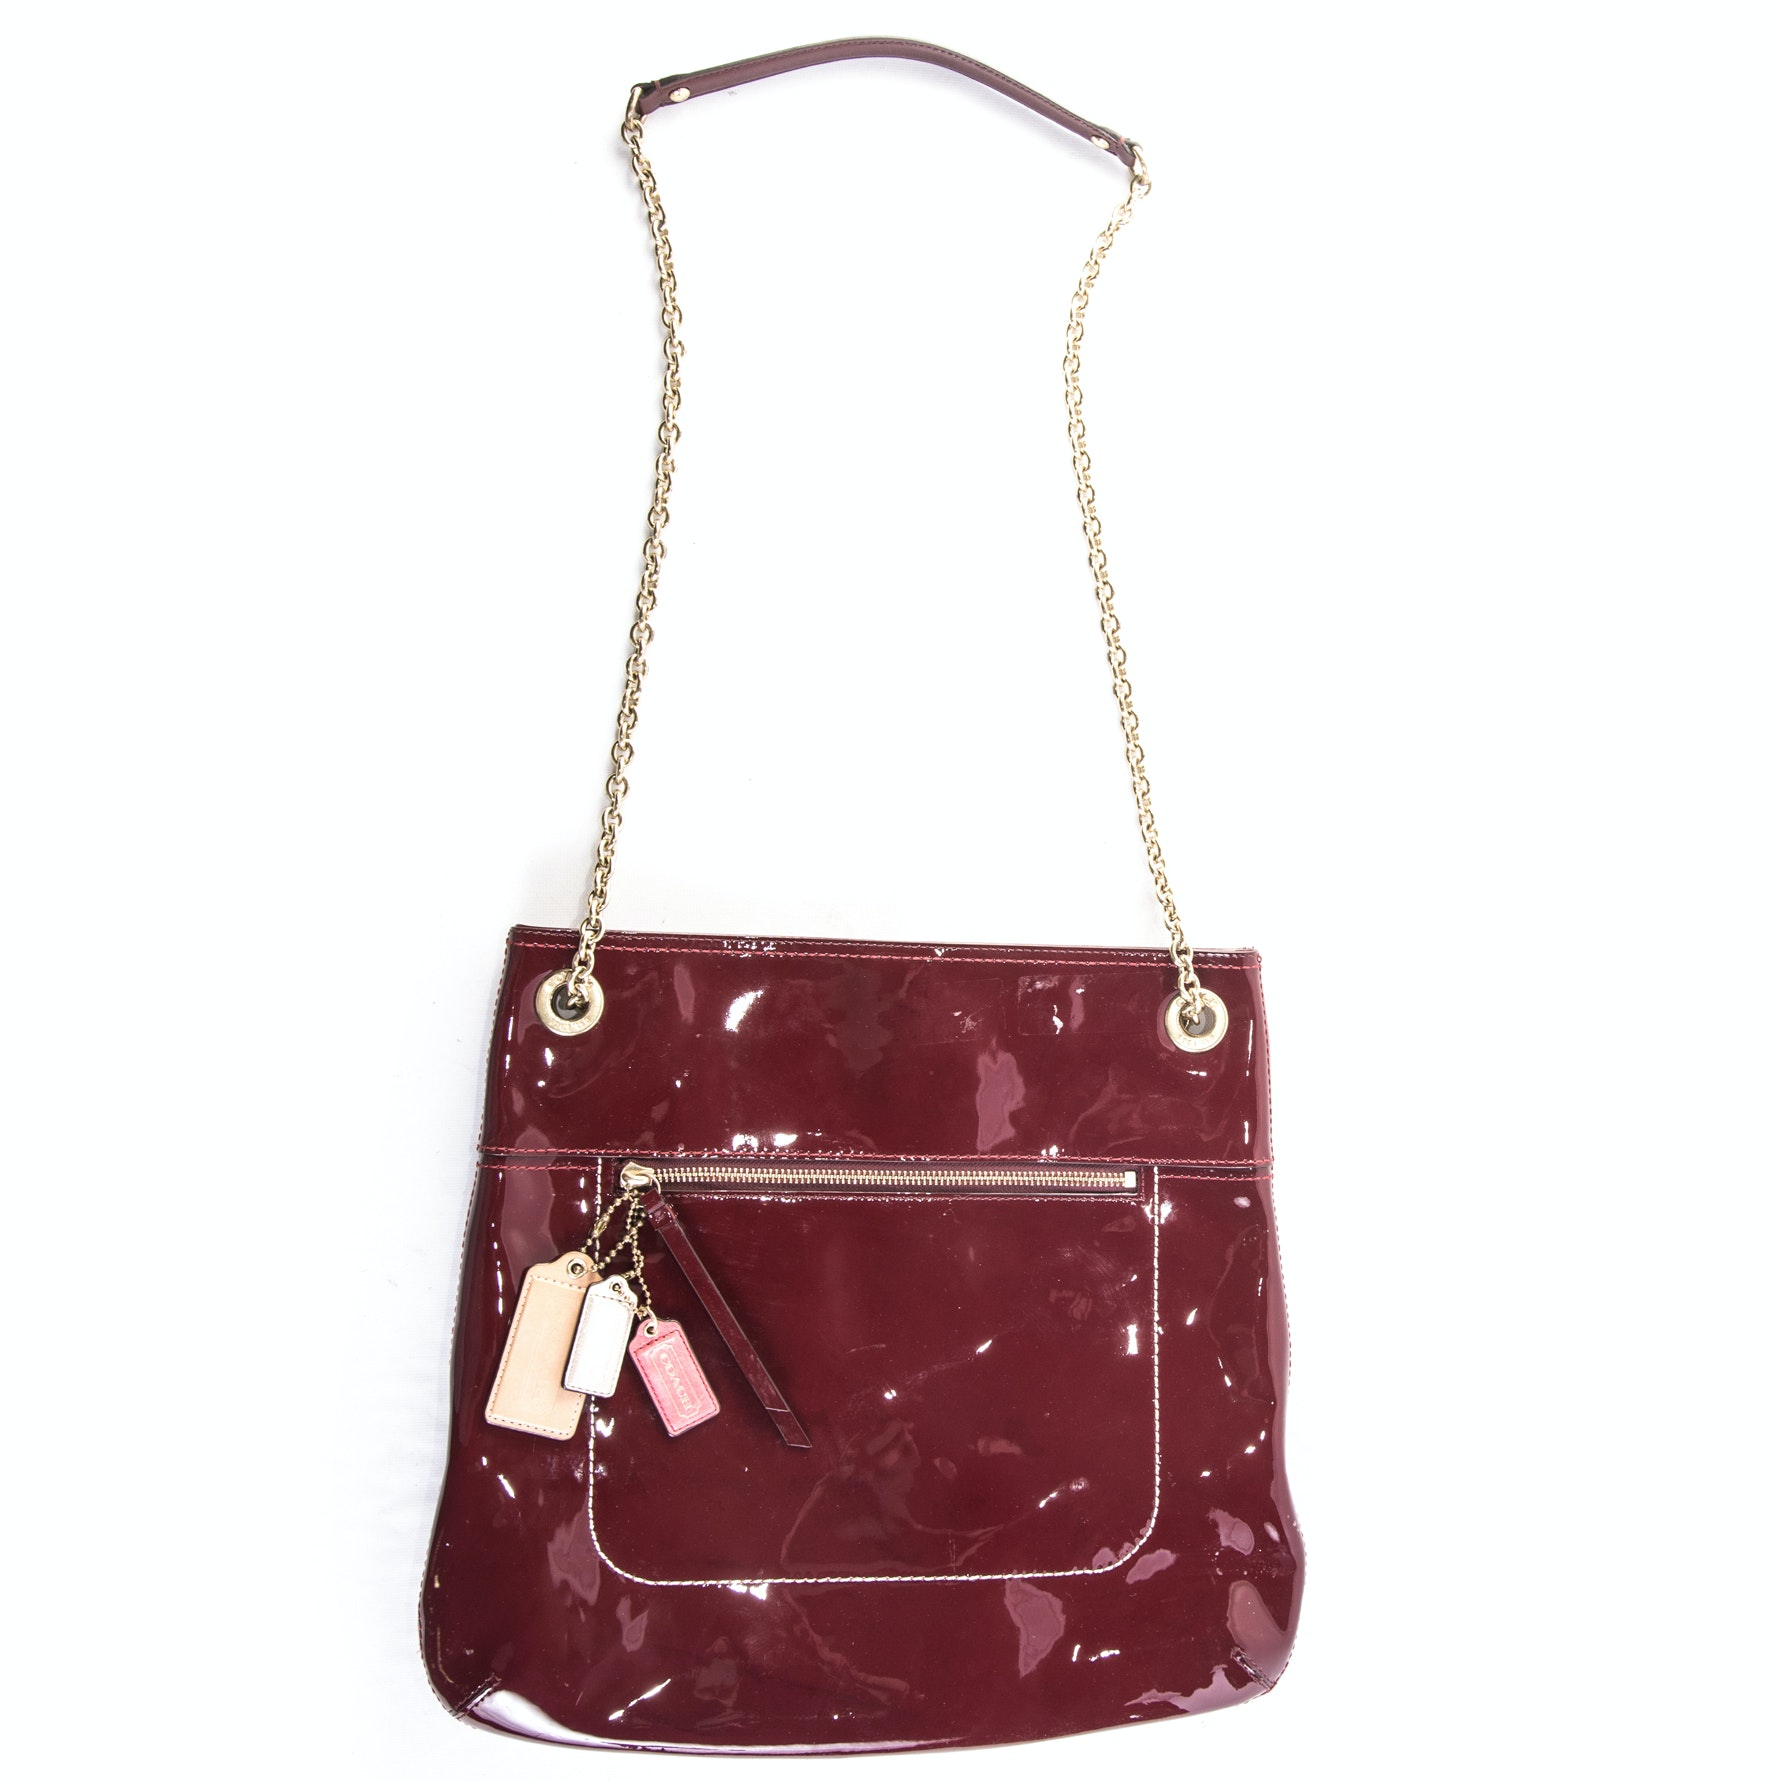 Coach Oxblood Colored Patent Leather Crossbody Handbag